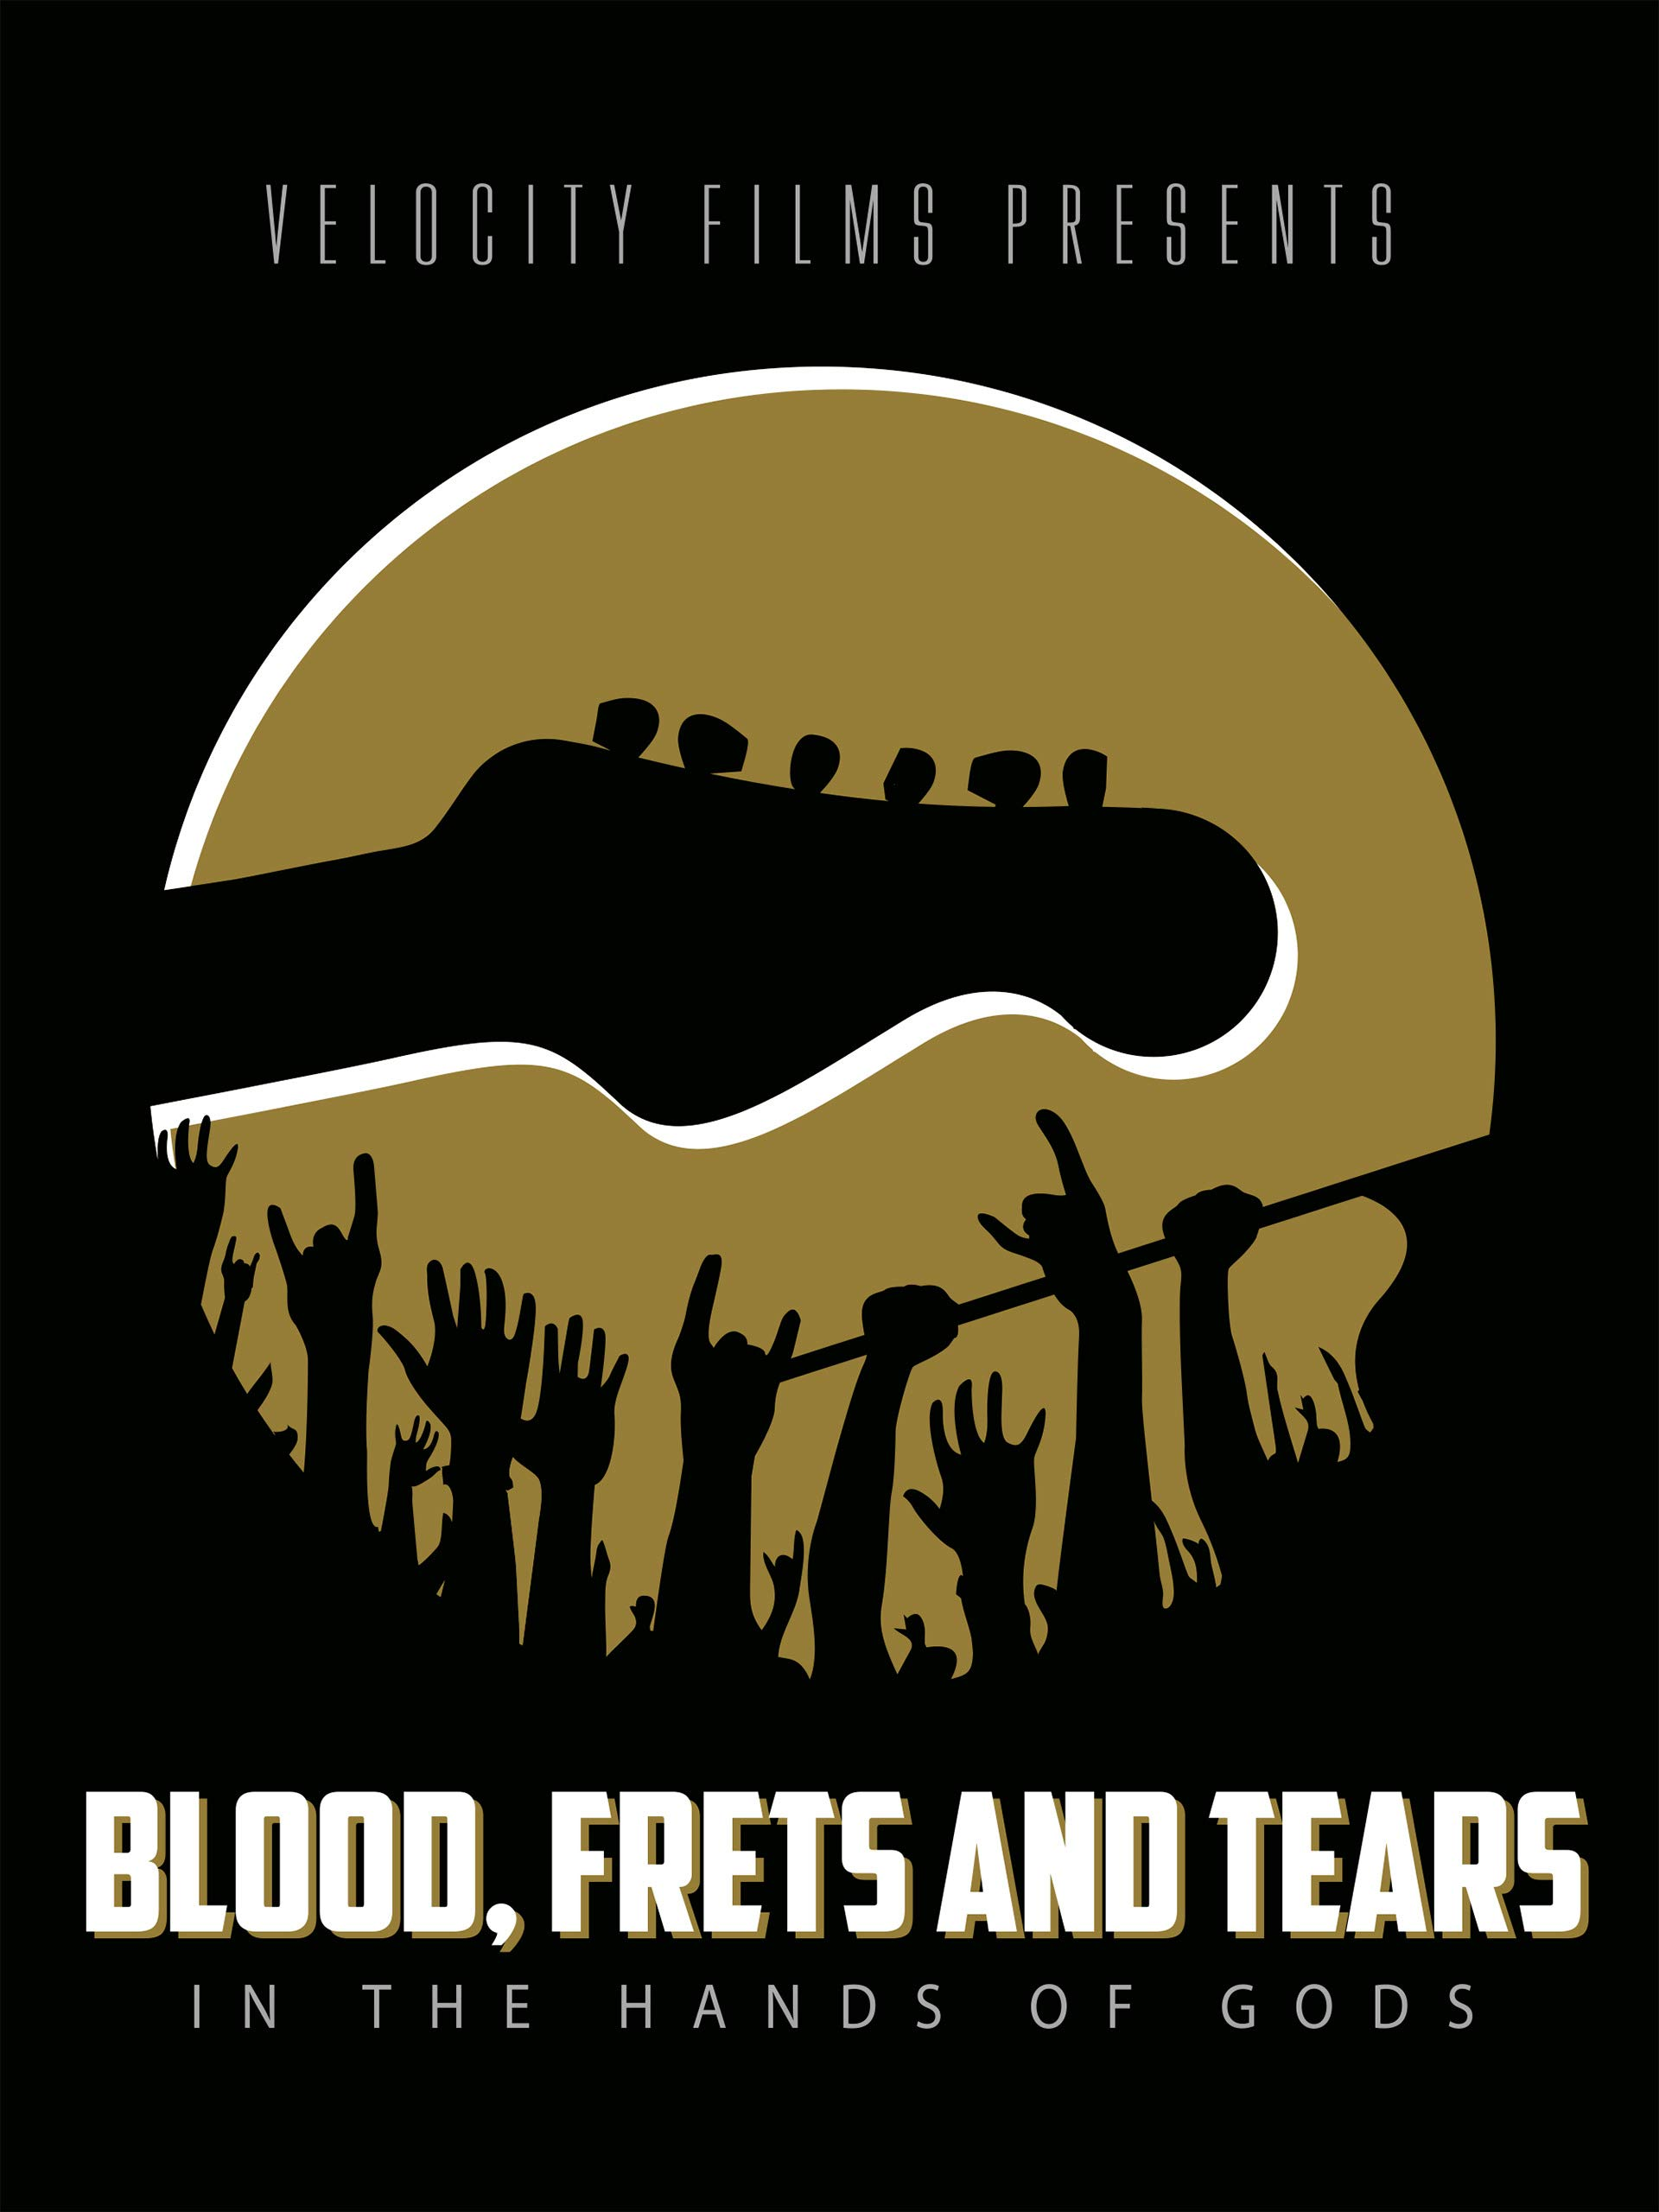 Blood, Frets and Tears